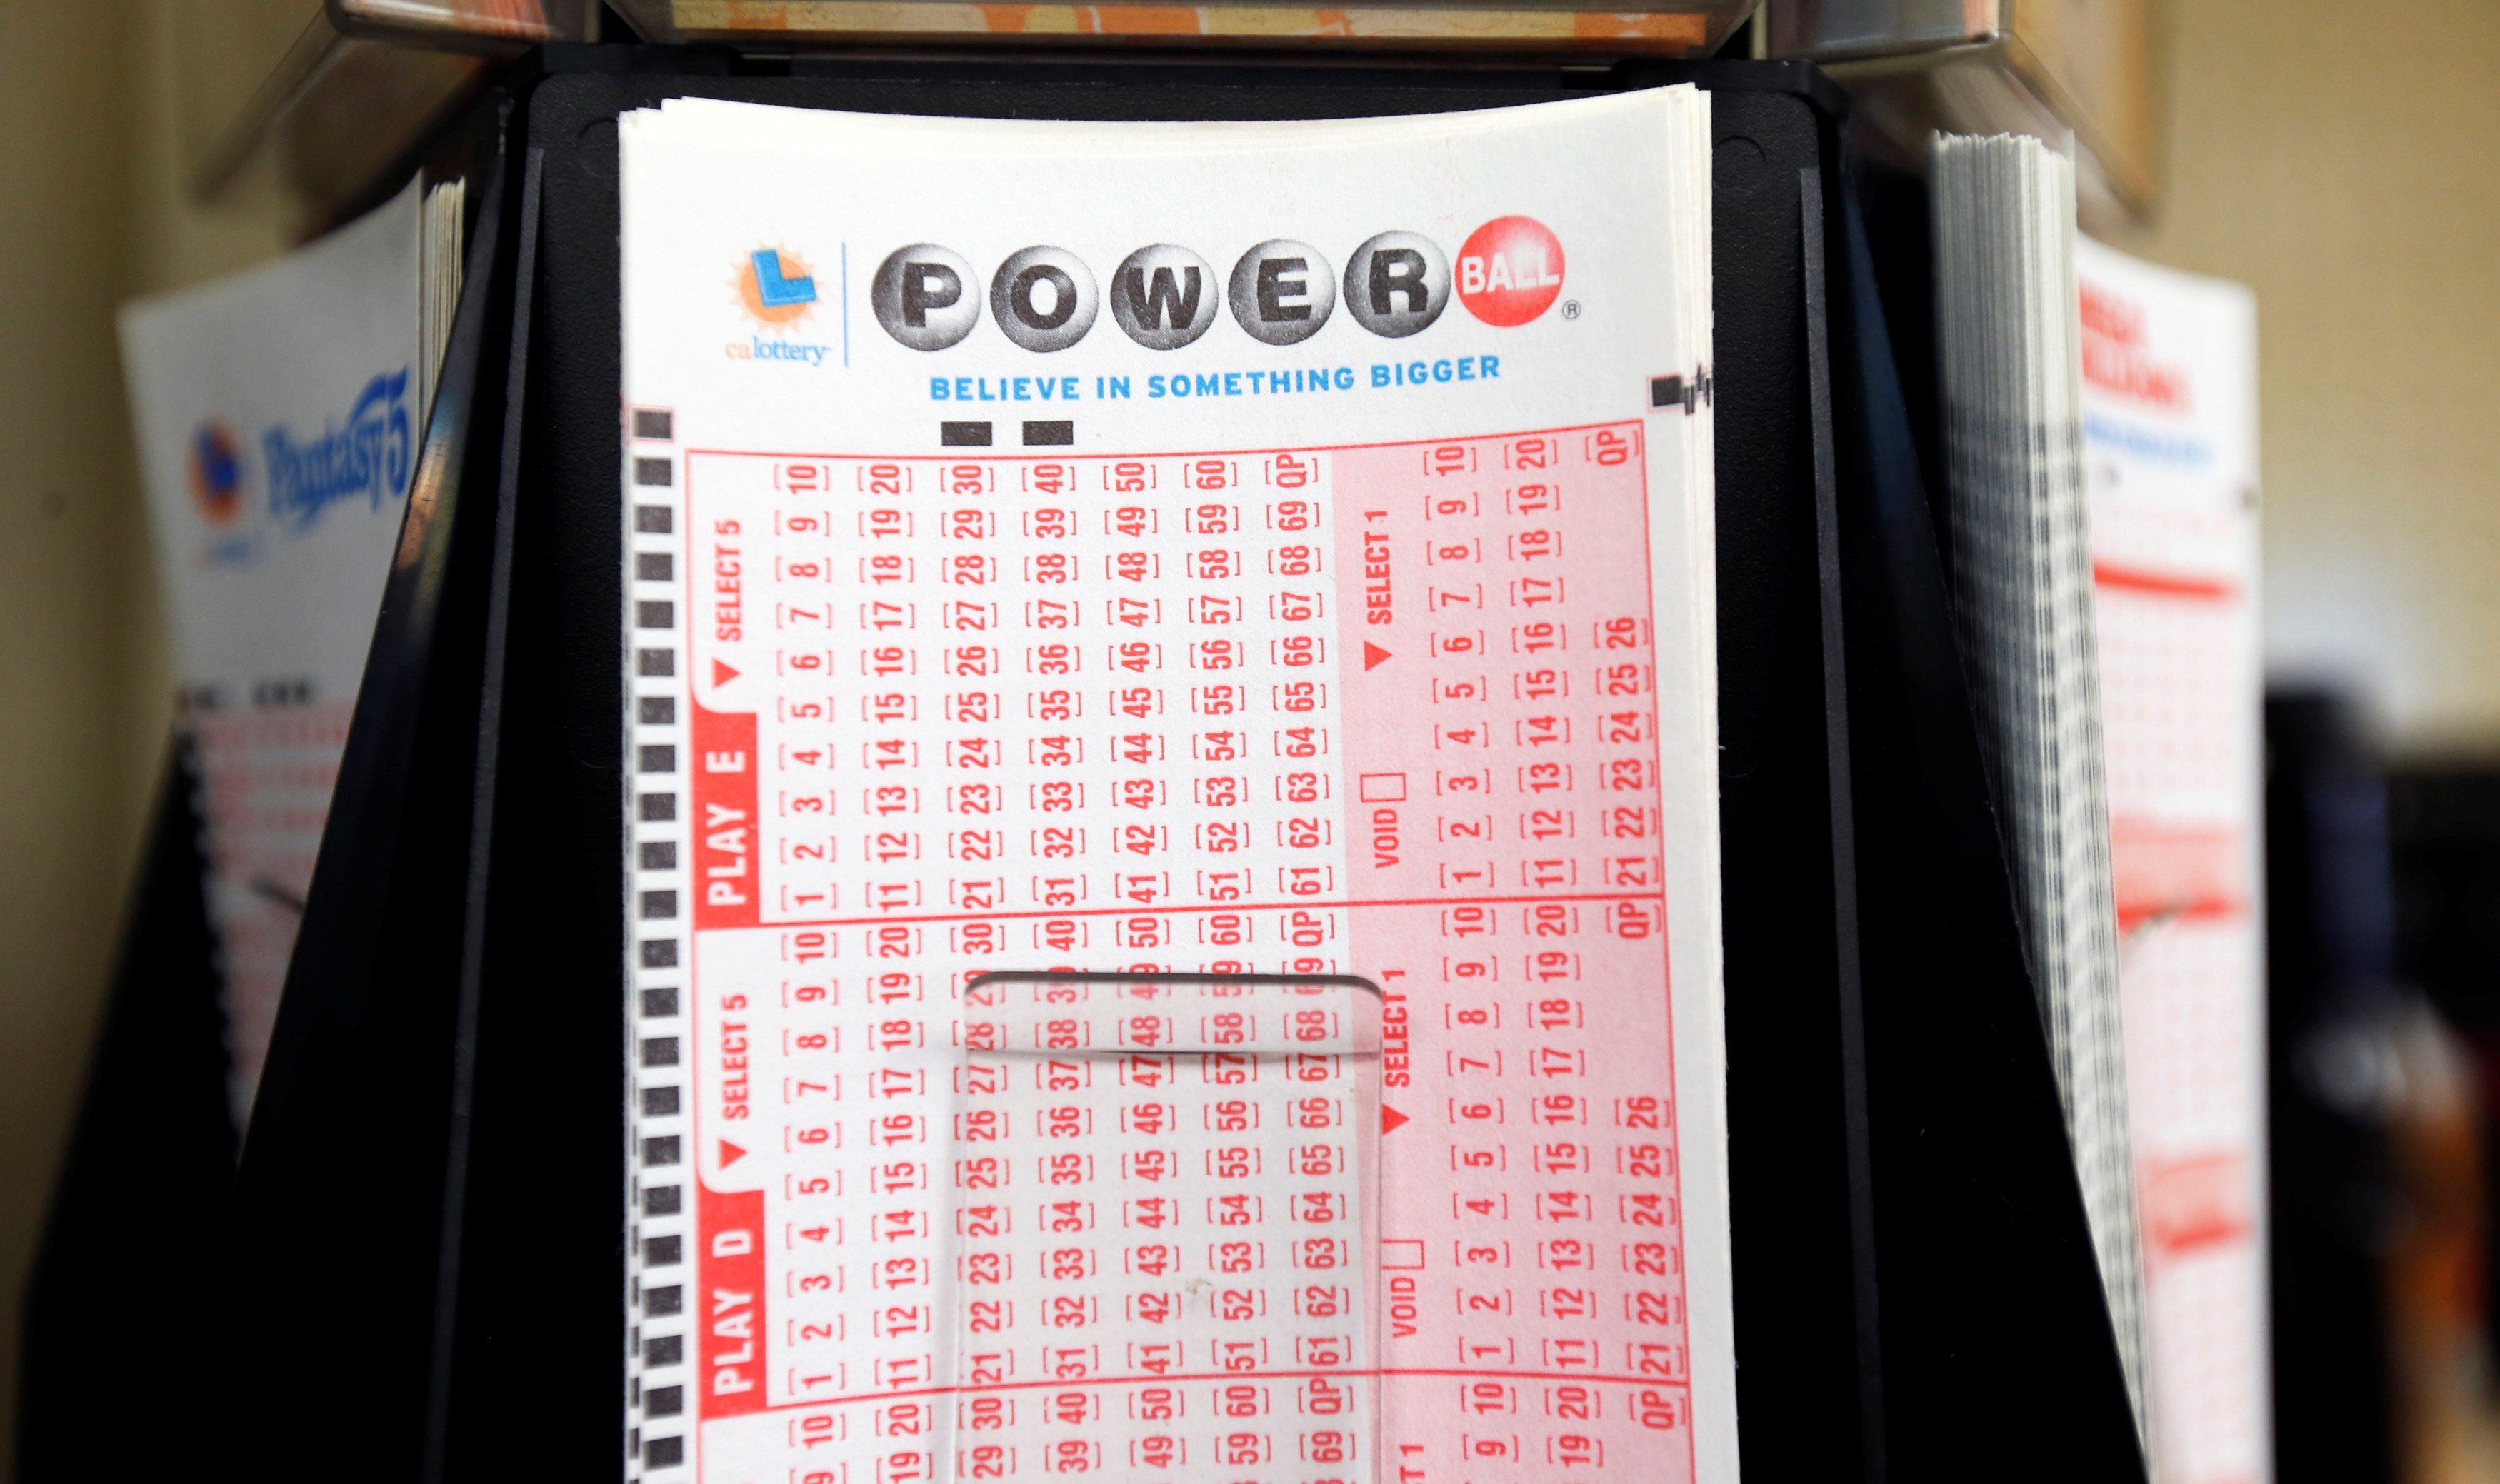 Lottery stubs are pictured at an ampm convenience store in Pasadena, California U.S., November 21, 2016. (REUTERS/Mario Anzuo